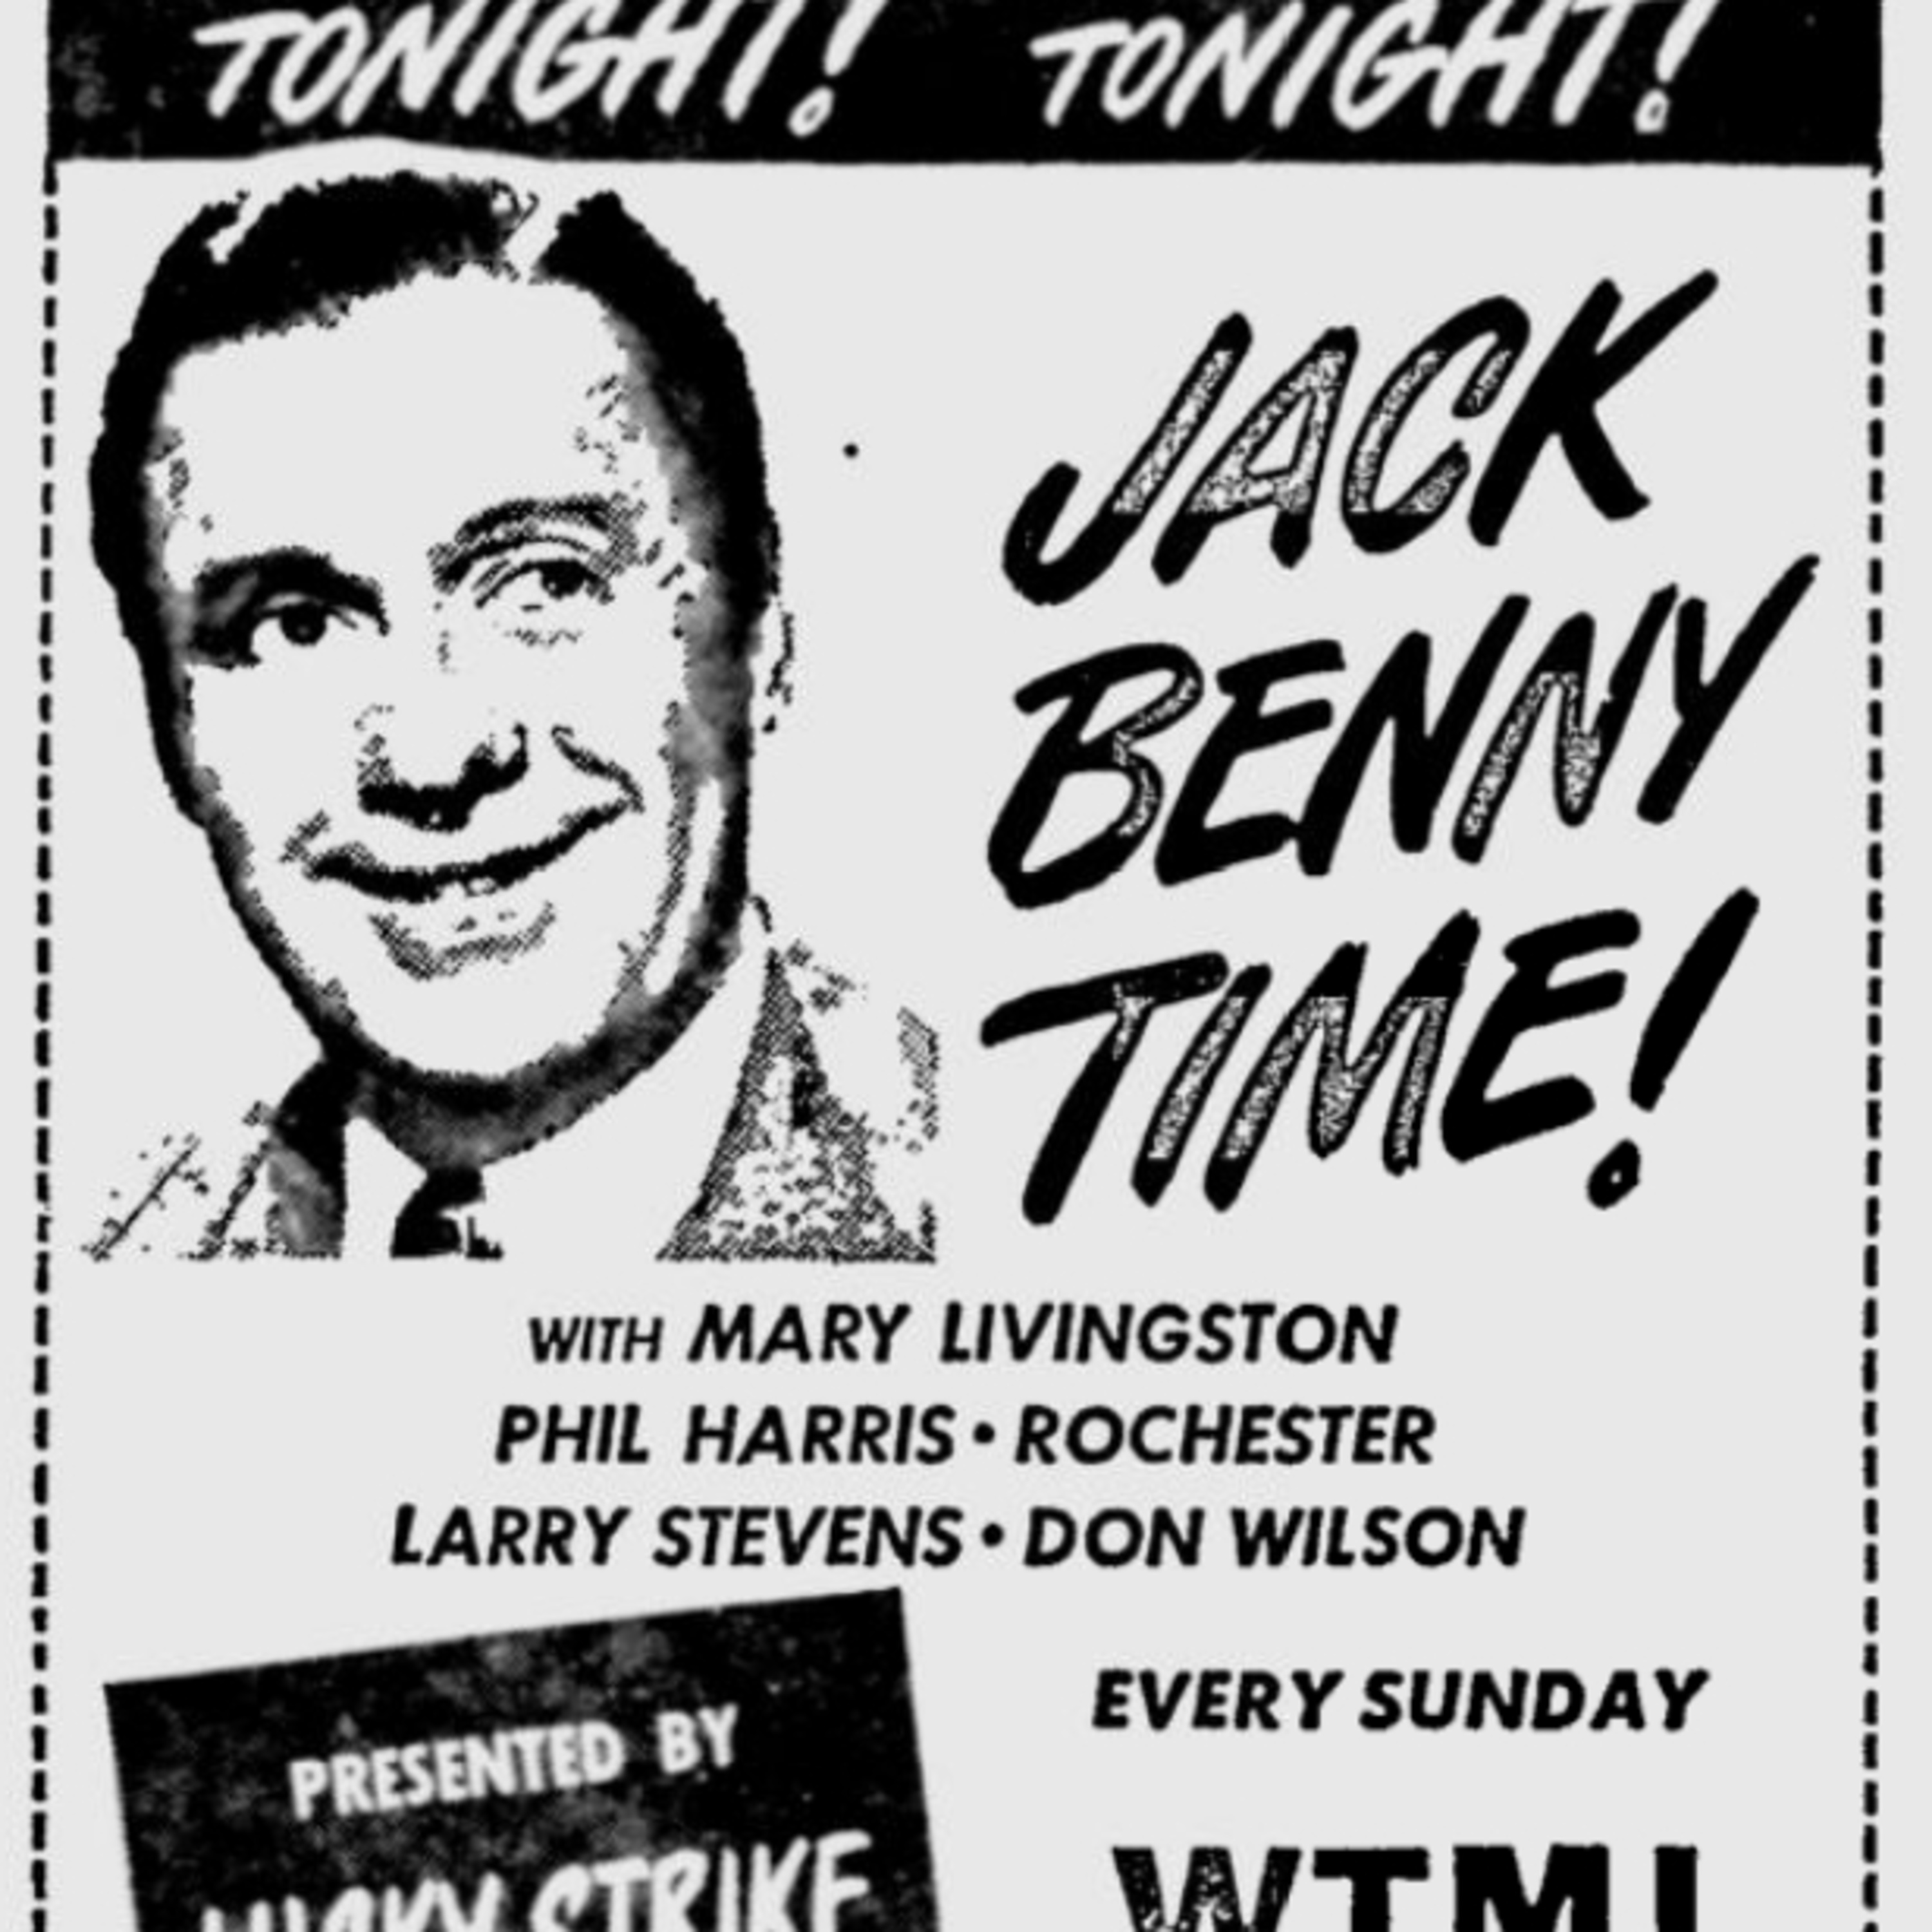 The Complete Jack Benny Podcast - All of Jack's Shows Chronologically From 1932-1958 - Uncle Tom's Cabin - Miniature Women - Don't Live Right - 1933-1934